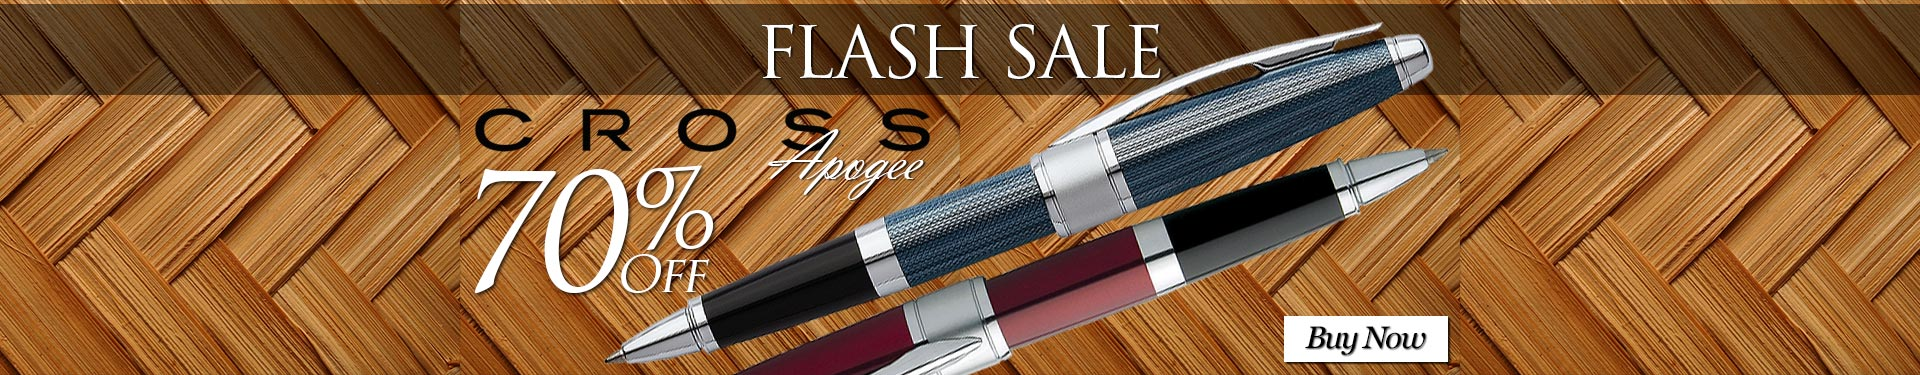 Flash Sale Save 70 on Cross Apogee